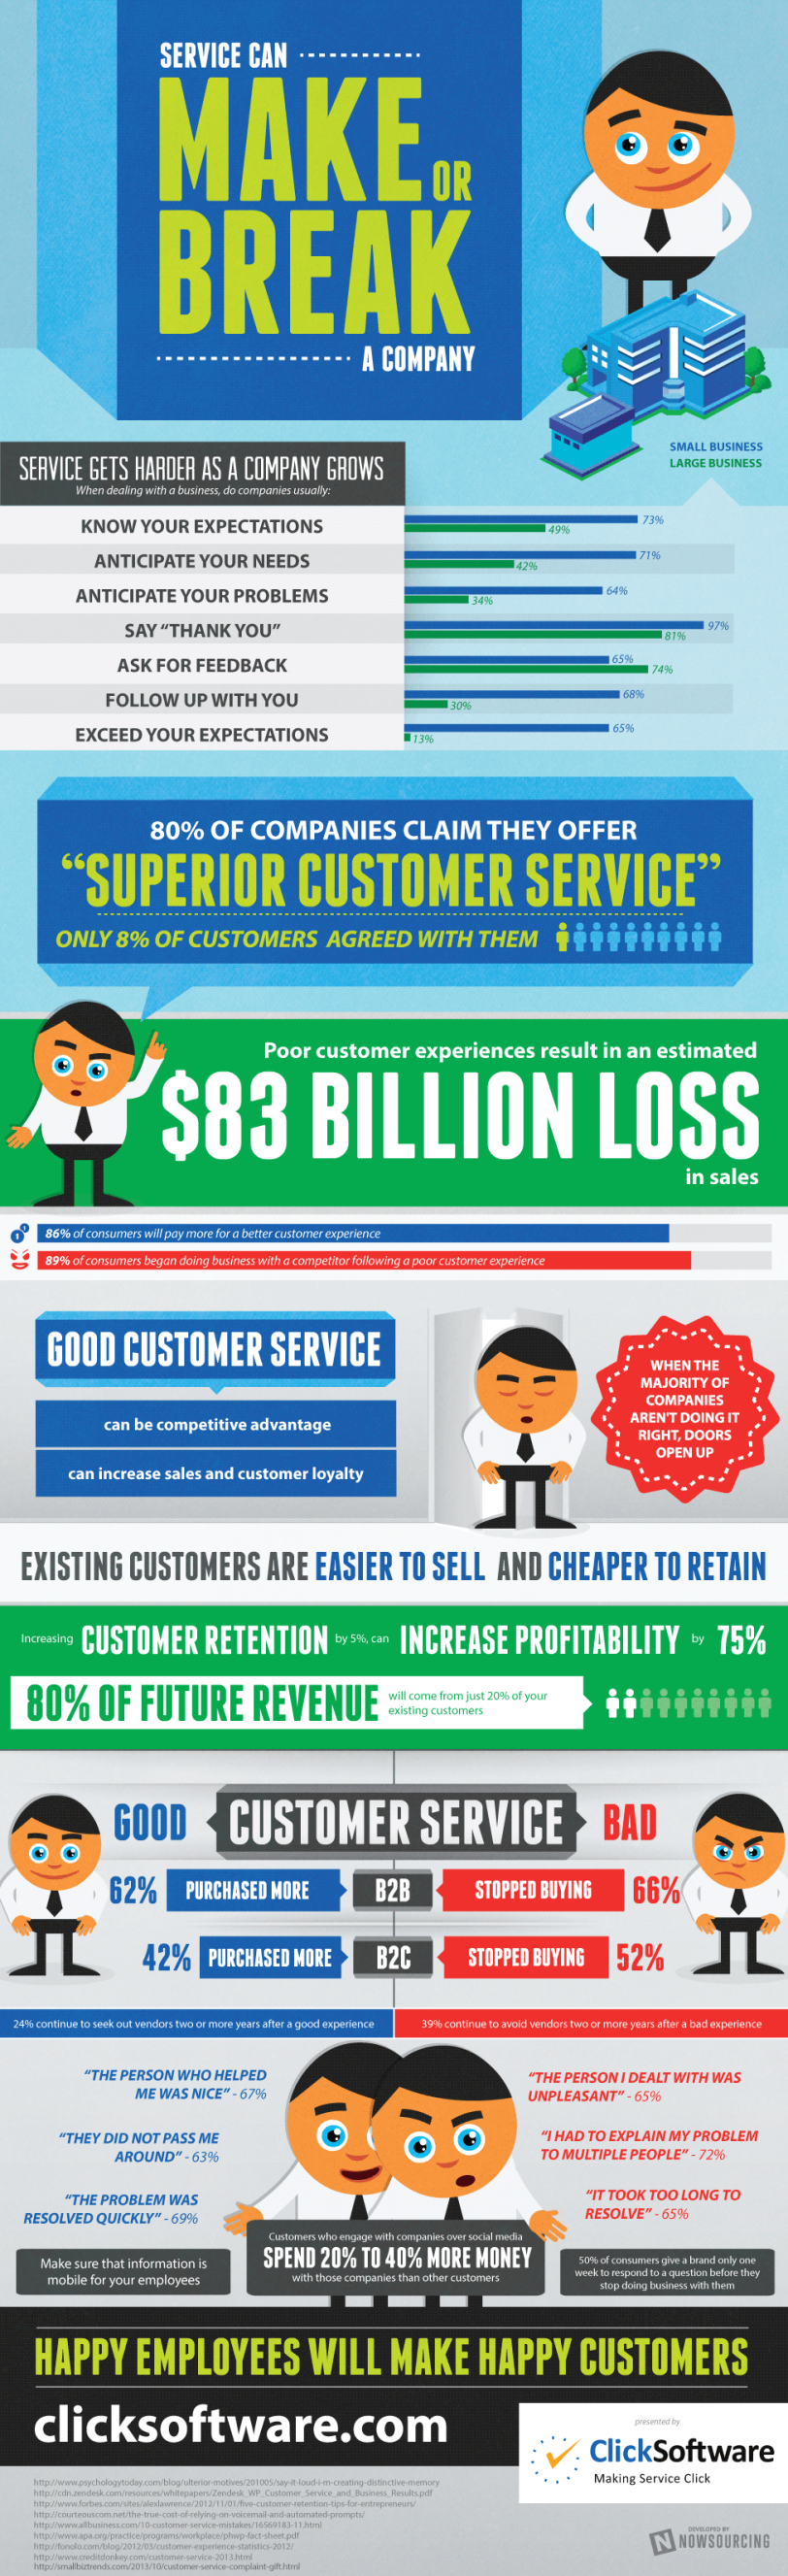 Service Can Make or Break a Company from ClickSoftware